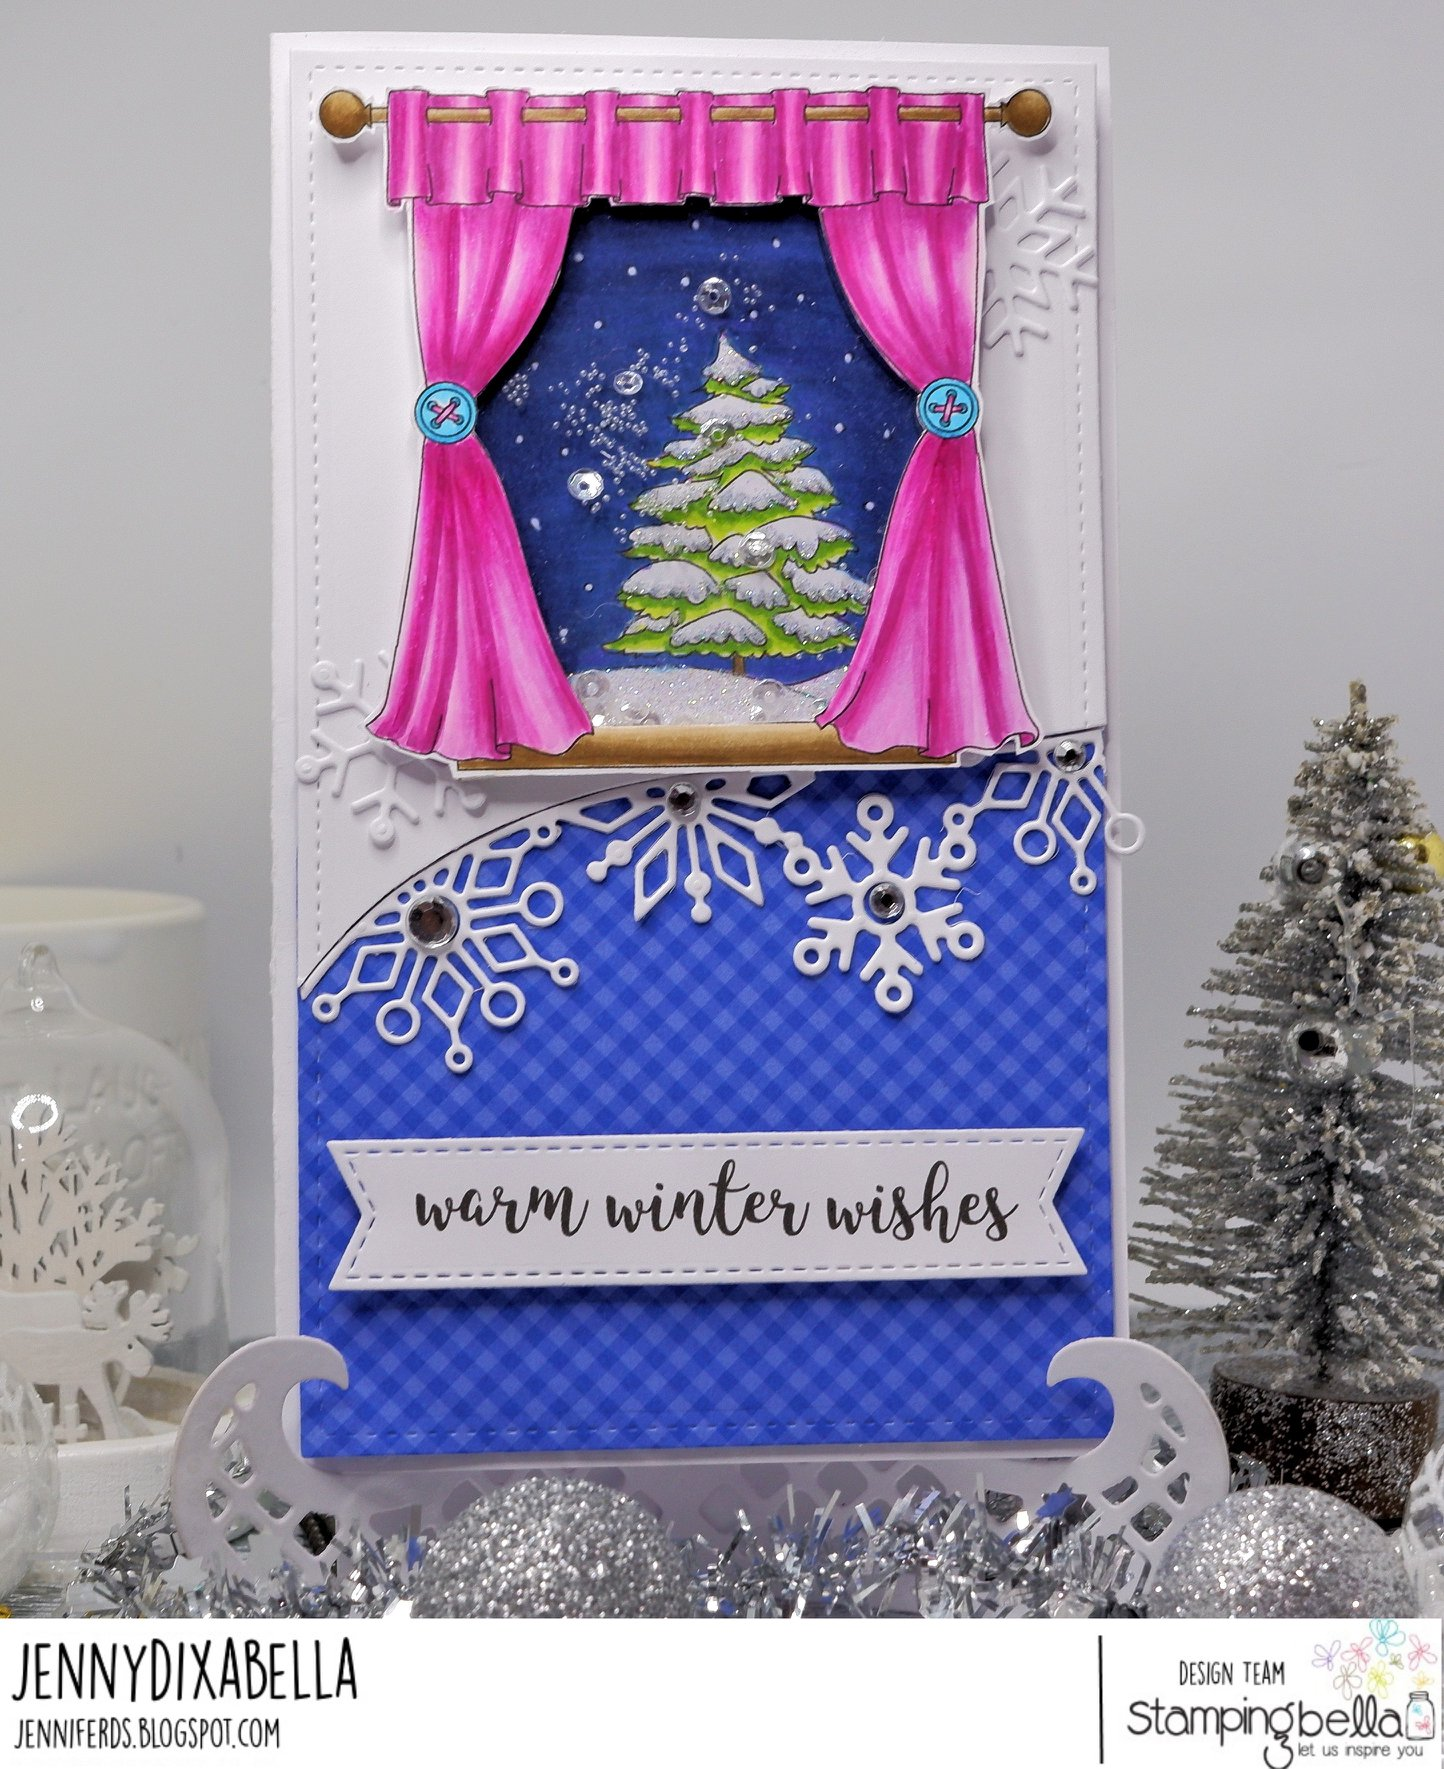 www.stampingbella.com : Rubber stamp used: WINTER WINDOW, card by Jenny Dix